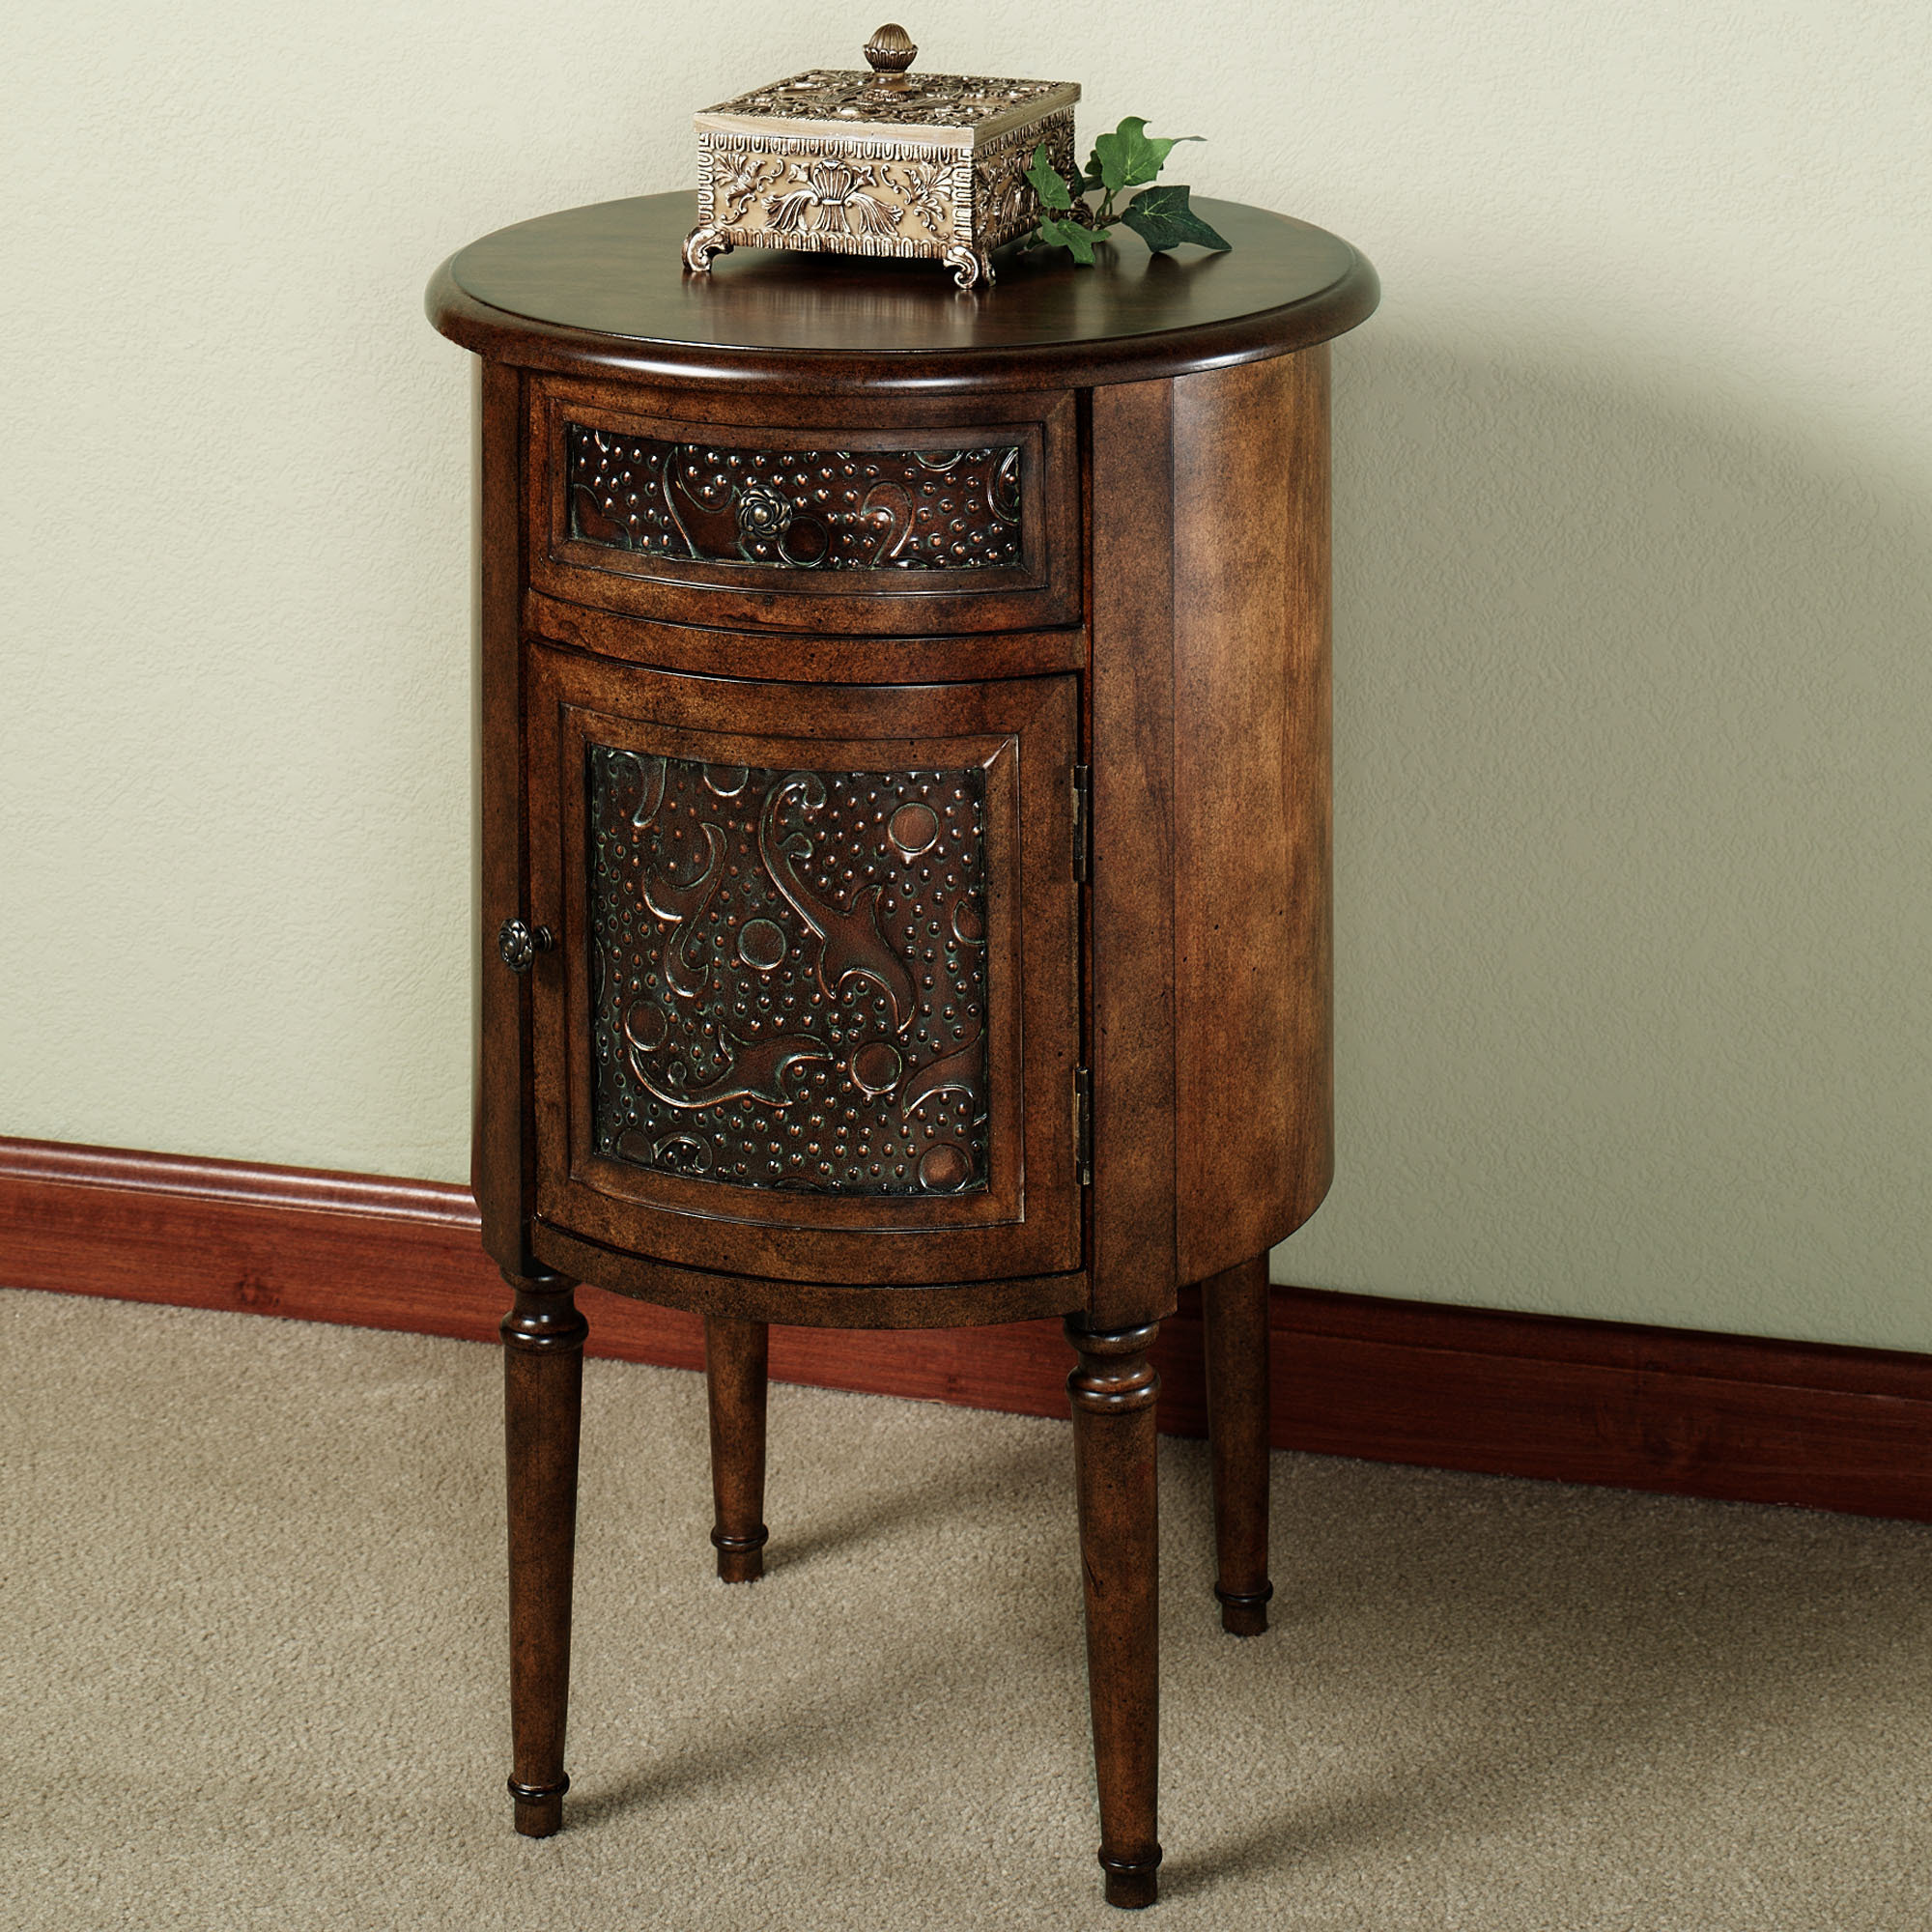 Tall Wood Accent Table With Round Tabletop And Handcrafted Decoration On  Storage Door